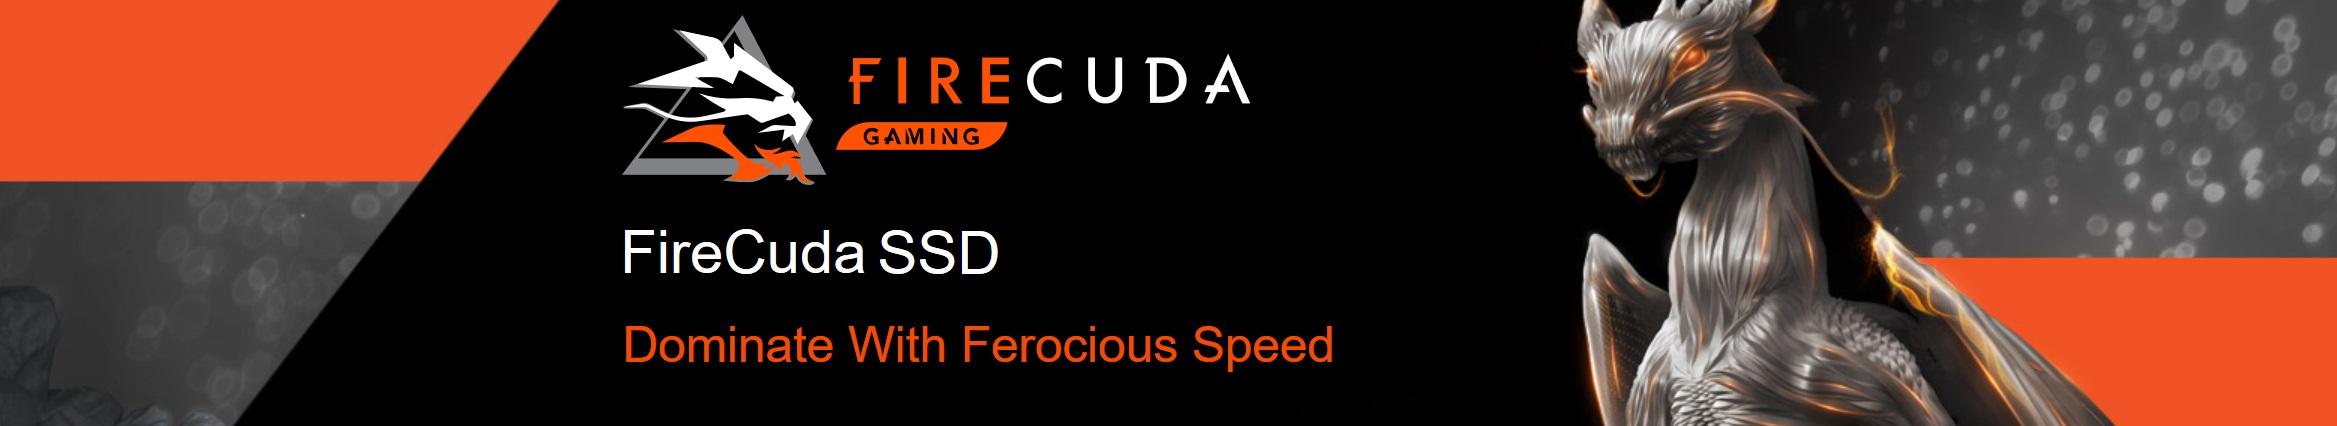 seagate-firecuda-gaming-solid-state-drives-ssd